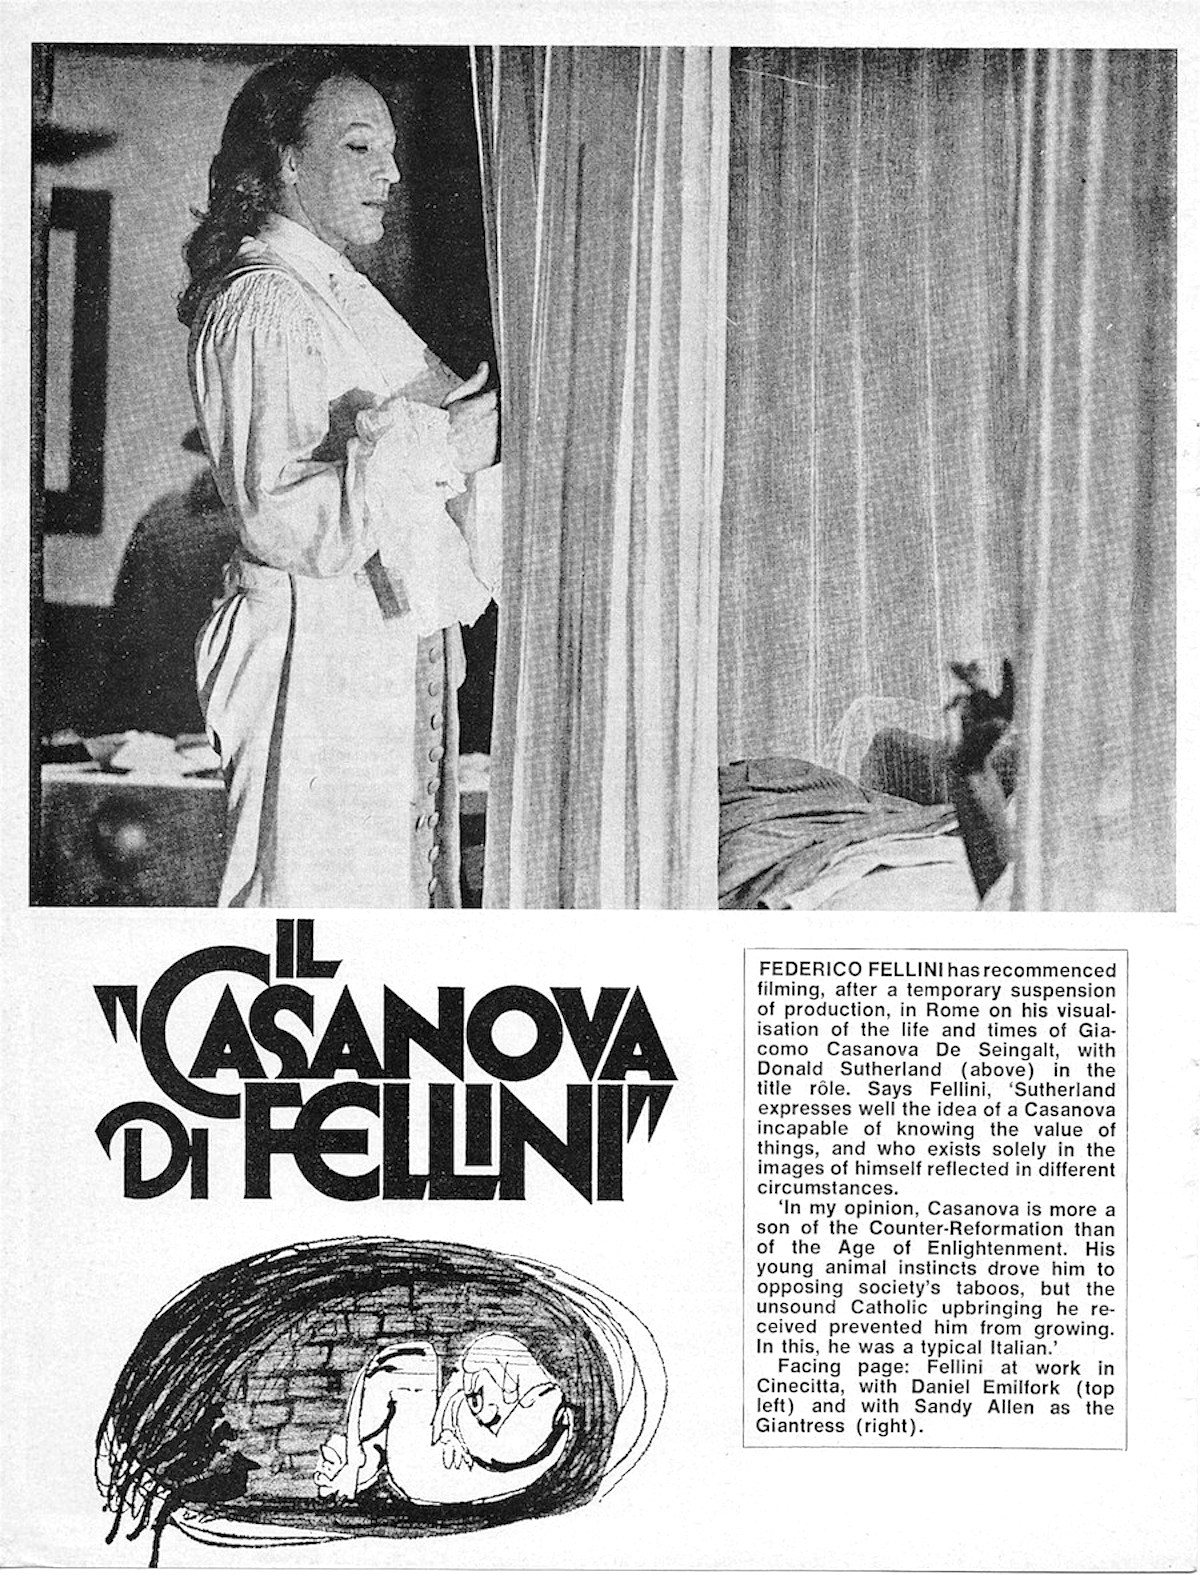 Films and Filming, Casanova, Fellini, Donald Sutherland, magazines, 1970s,